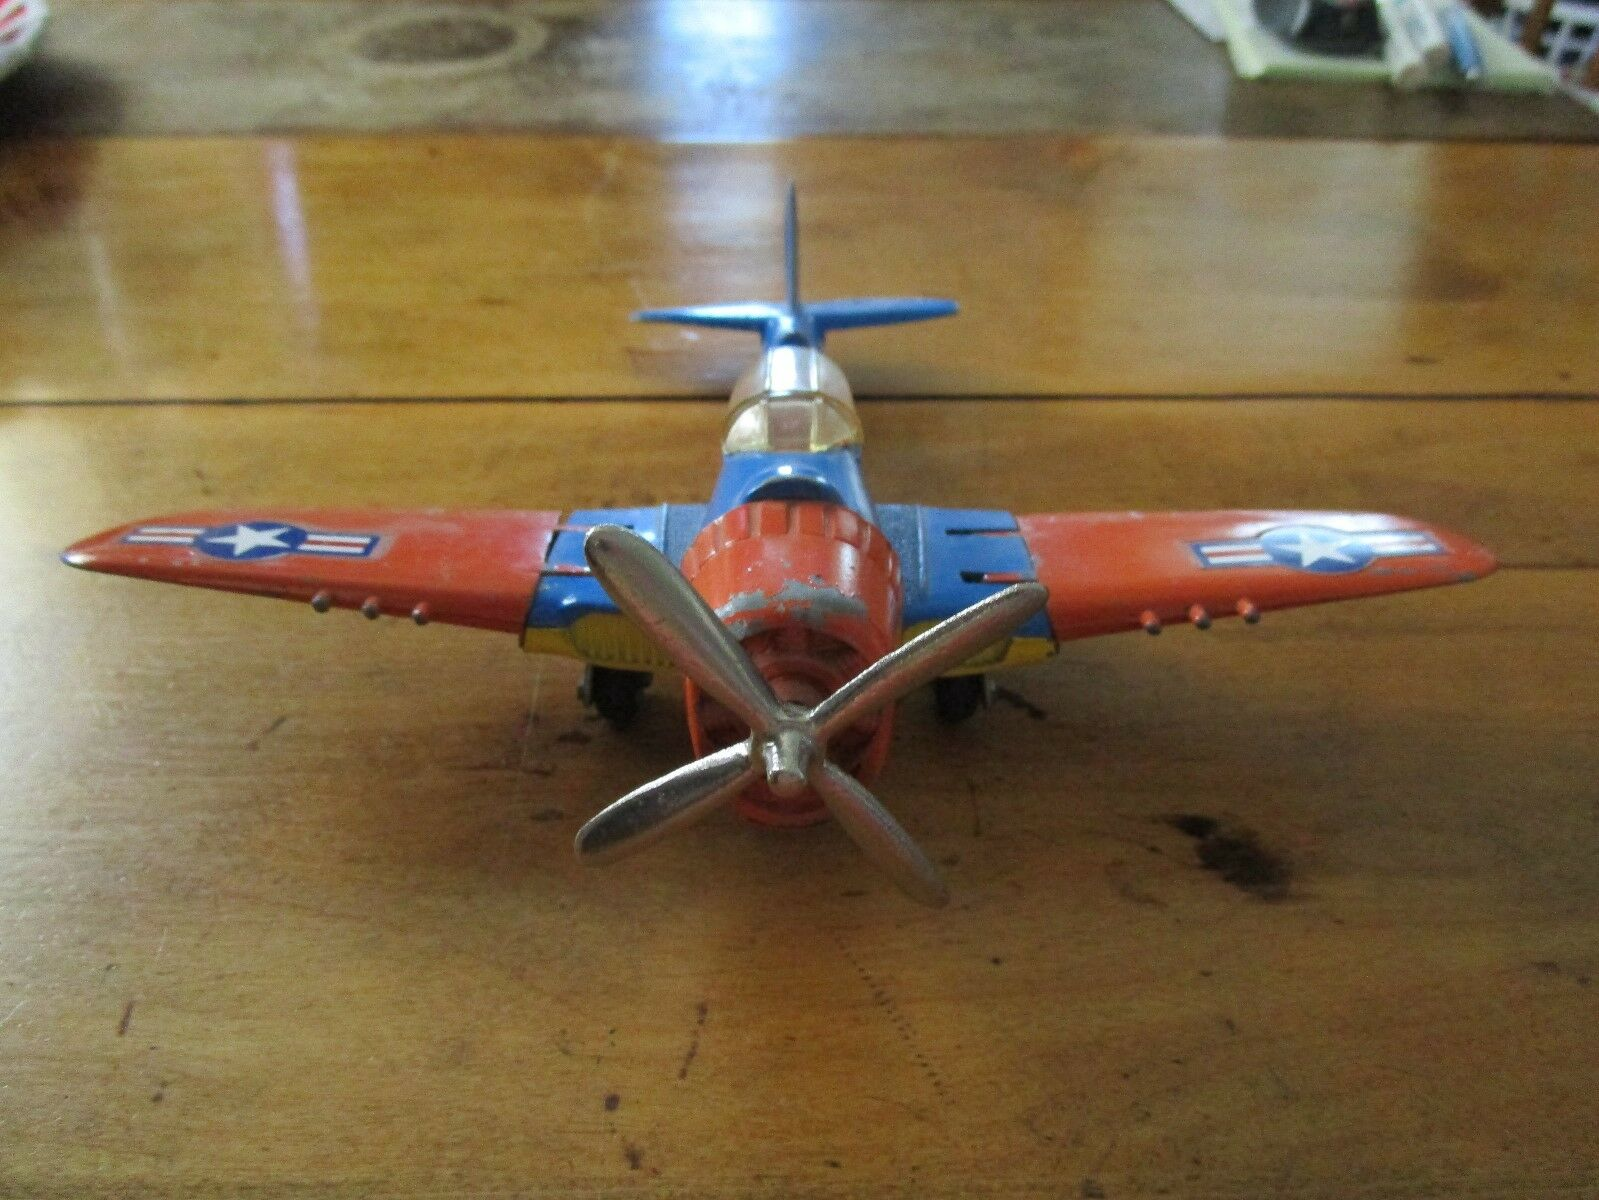 VINTAGE 1950'S HUBLEY MILITARY BOMBER AIRPLANE